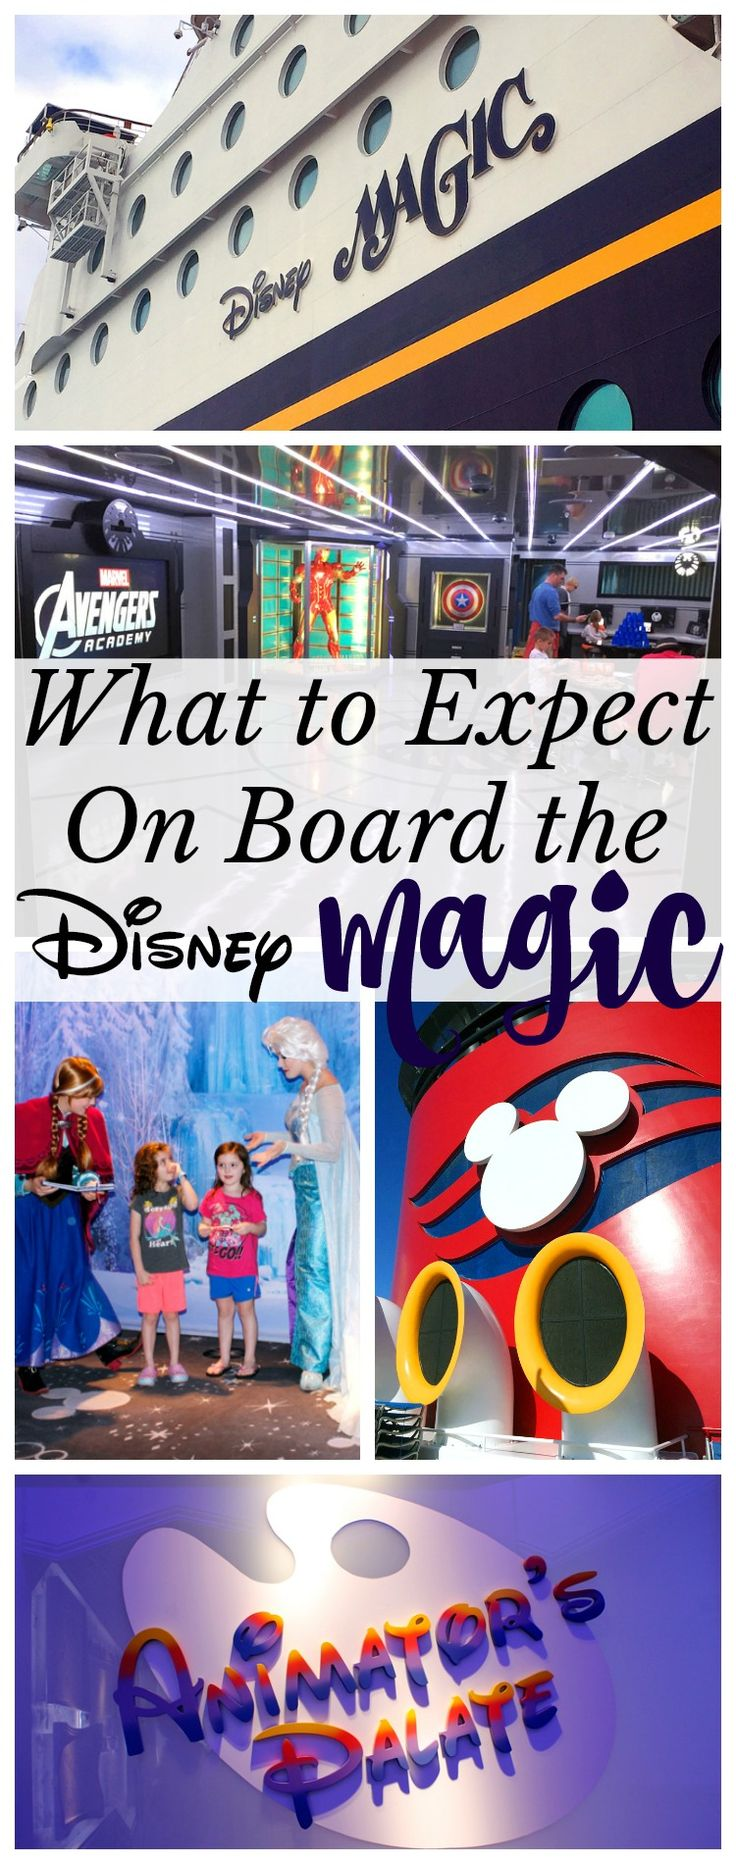 If you are planning a Disney Cruise Line vacation, there are many options to choose from! How do you know which itinerary is best? What about the ships? We sailed on the Disney Magic cruise ship and loved it. Read more about what you can expect when you set sail with the Disney Magic!